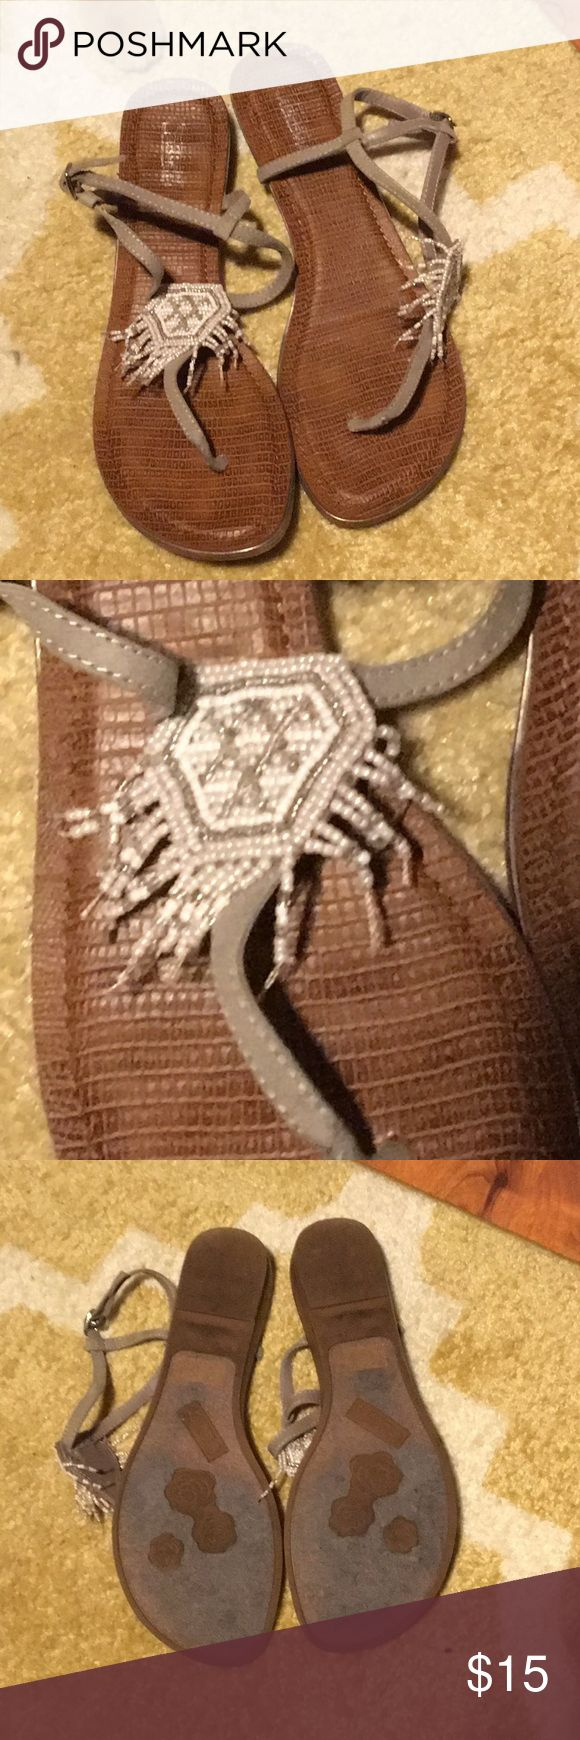 Carlos Santana 👡 sandals These sandals have a beaded accent that makes them perfect for a trip to the beach. They are ideal for spring break or a beach wedding. Carlos Santana Shoes Sandals